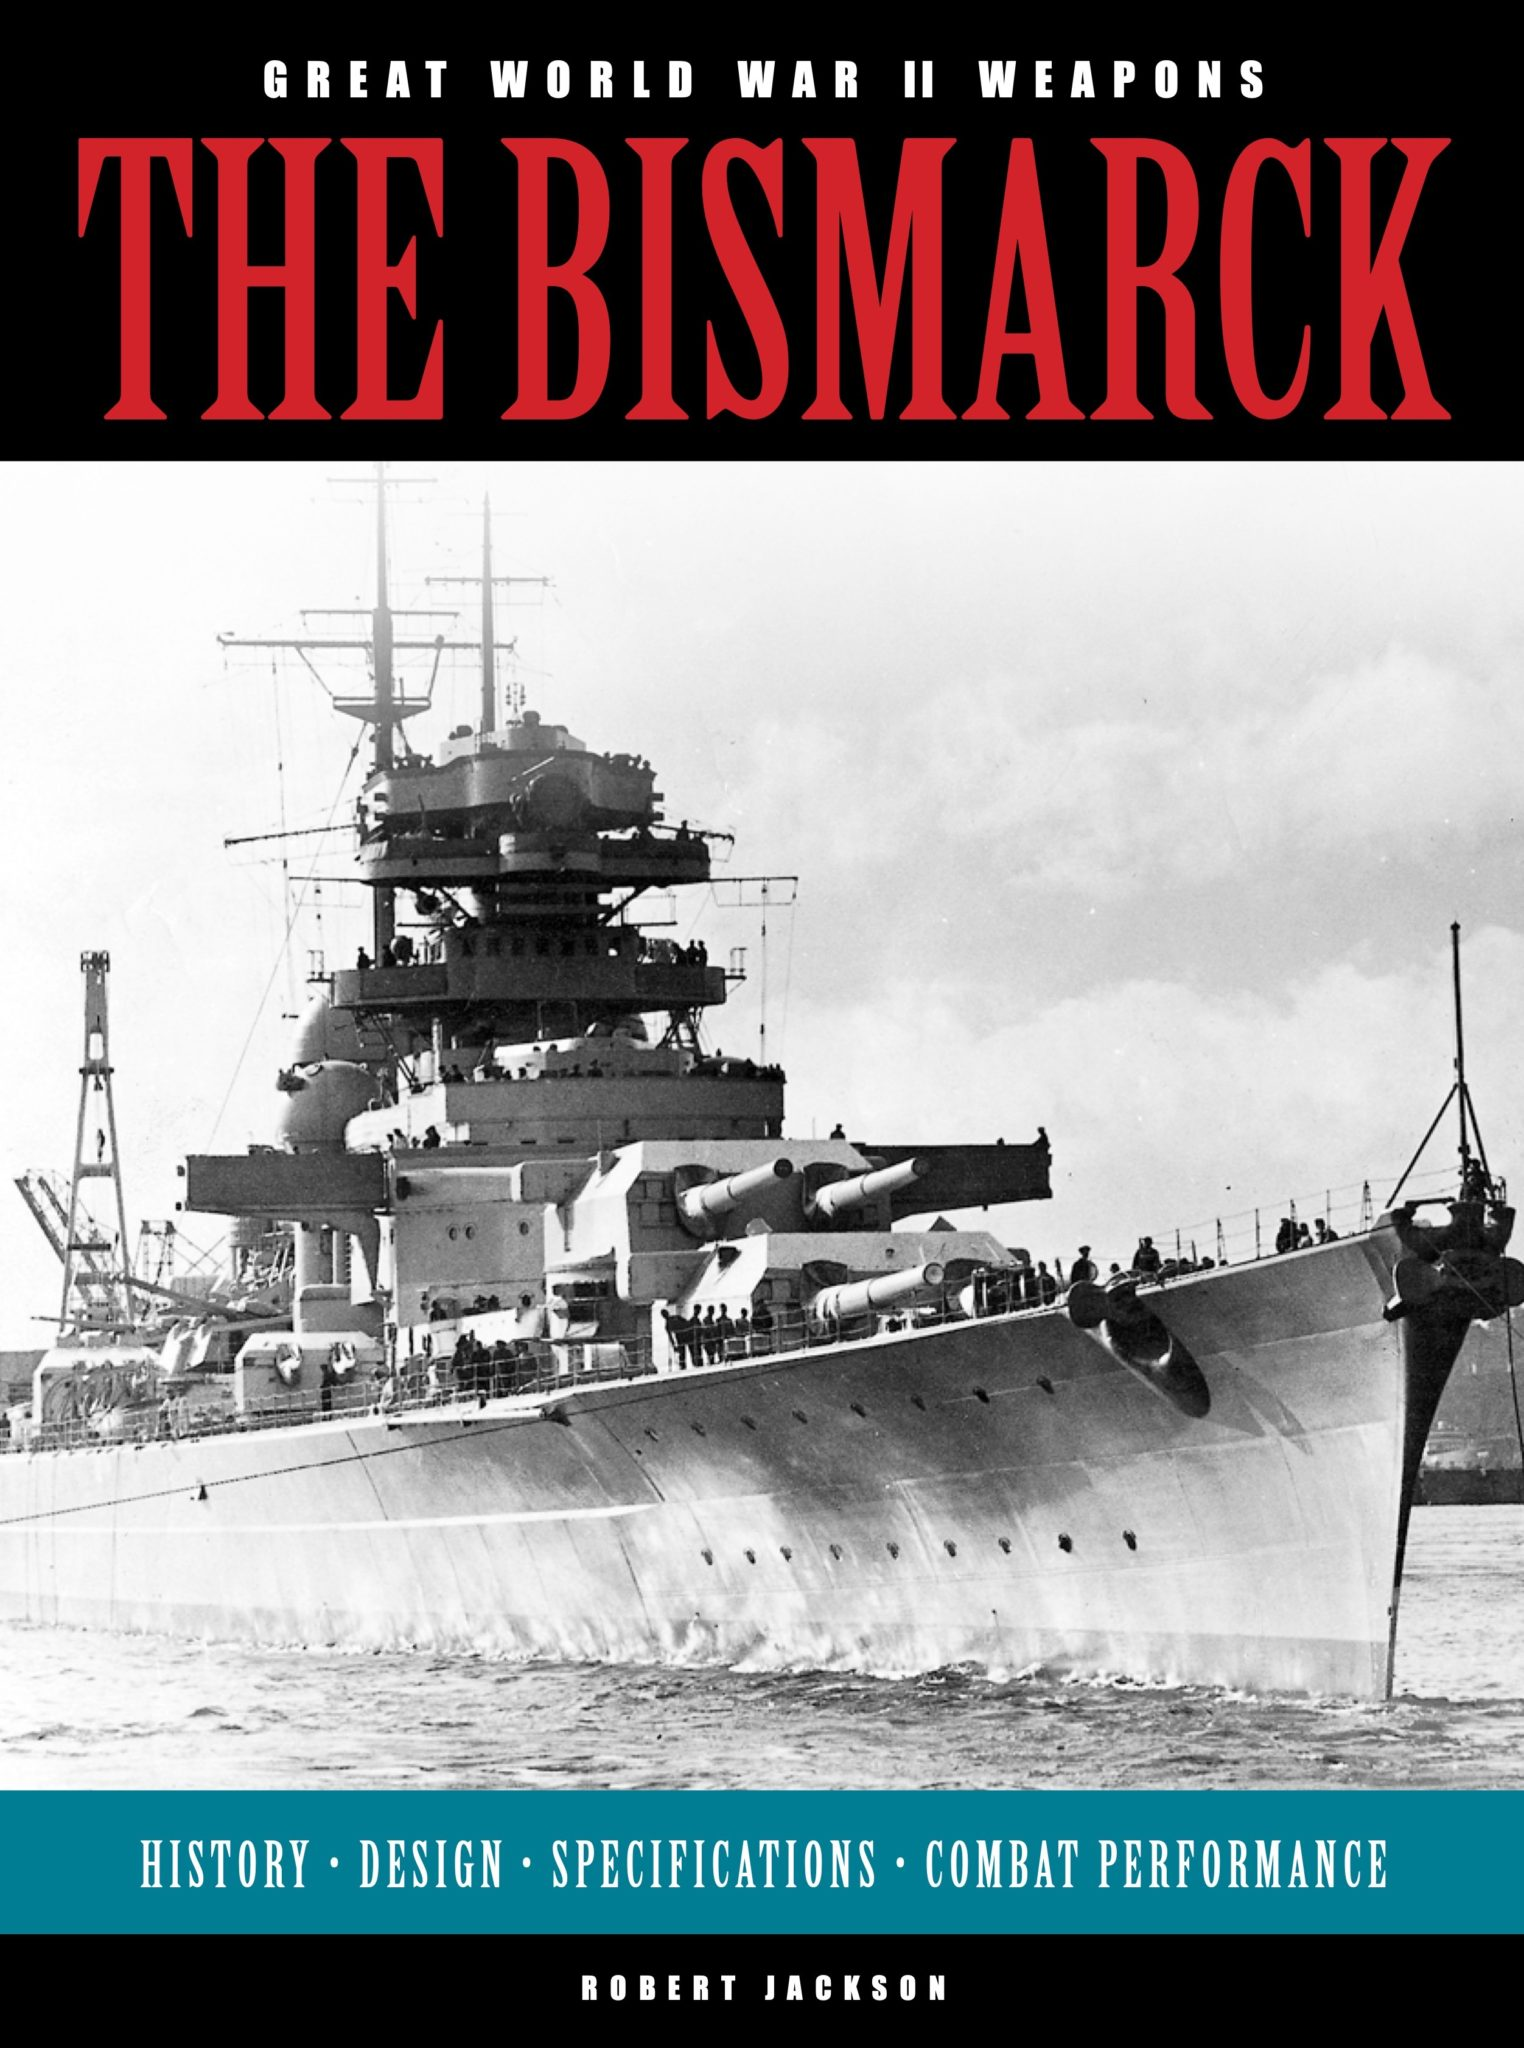 The Bismarck: Great WWII Weapons